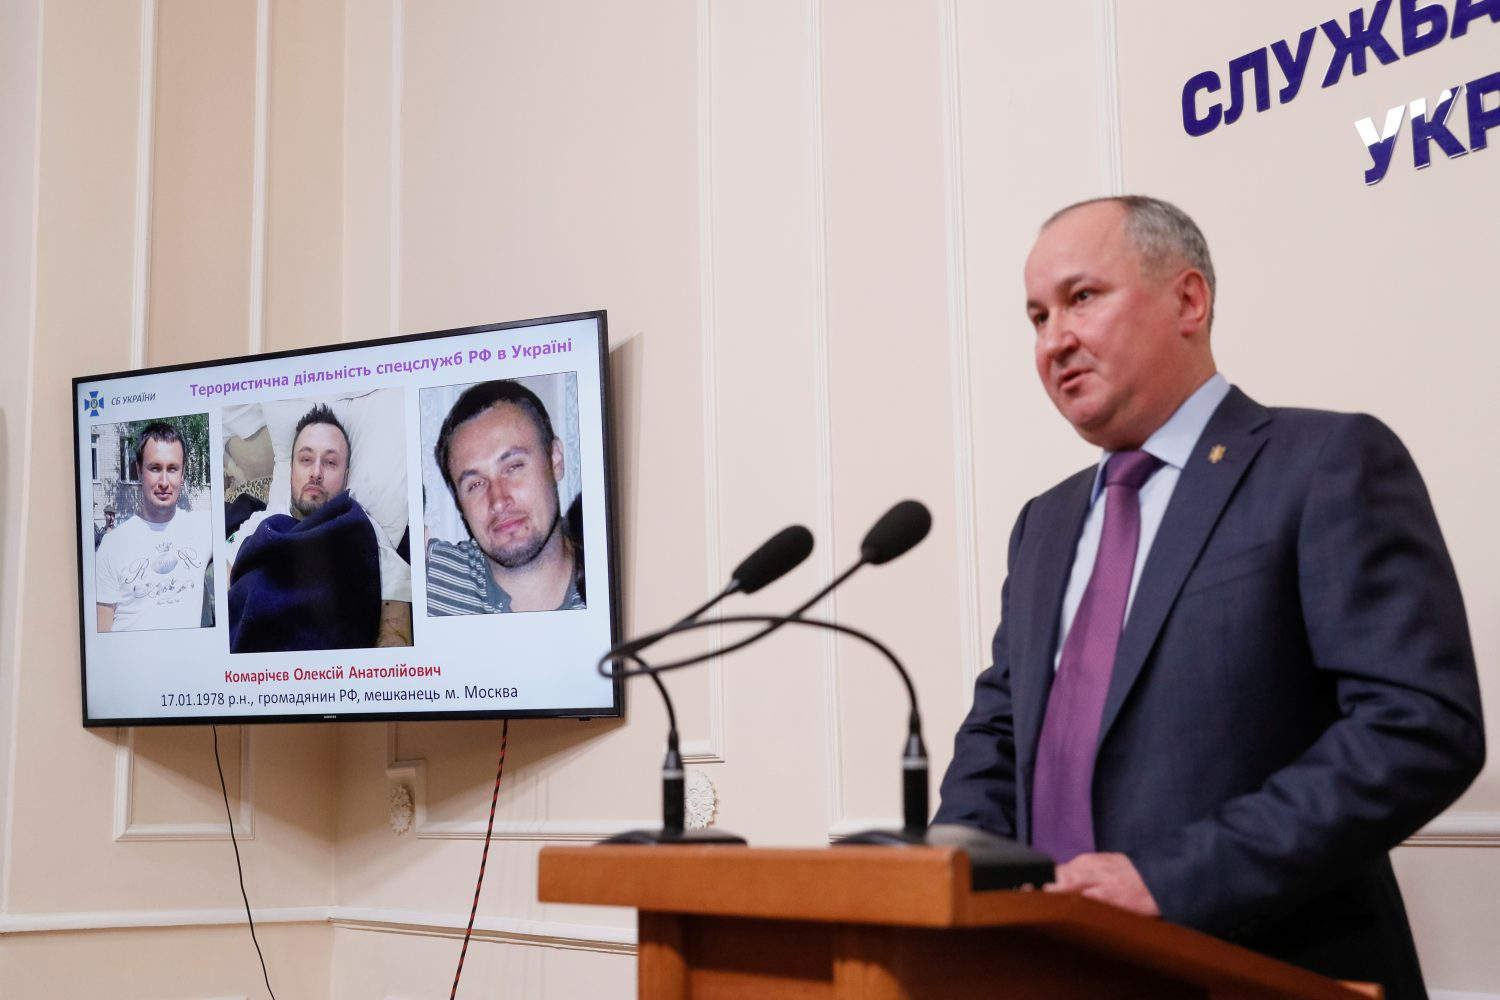 Head of the Security Service of Ukraine Vasyl Hrytsak (SBU) speaks during a news conference, dedicated to the alleged detention of members of a sabotage-reconnaissance group, who according to SBU were sent by Russian intelligence agencies, in Kiev, Ukraine April 17, 2019. REUTERS/Valentyn Ogirenko